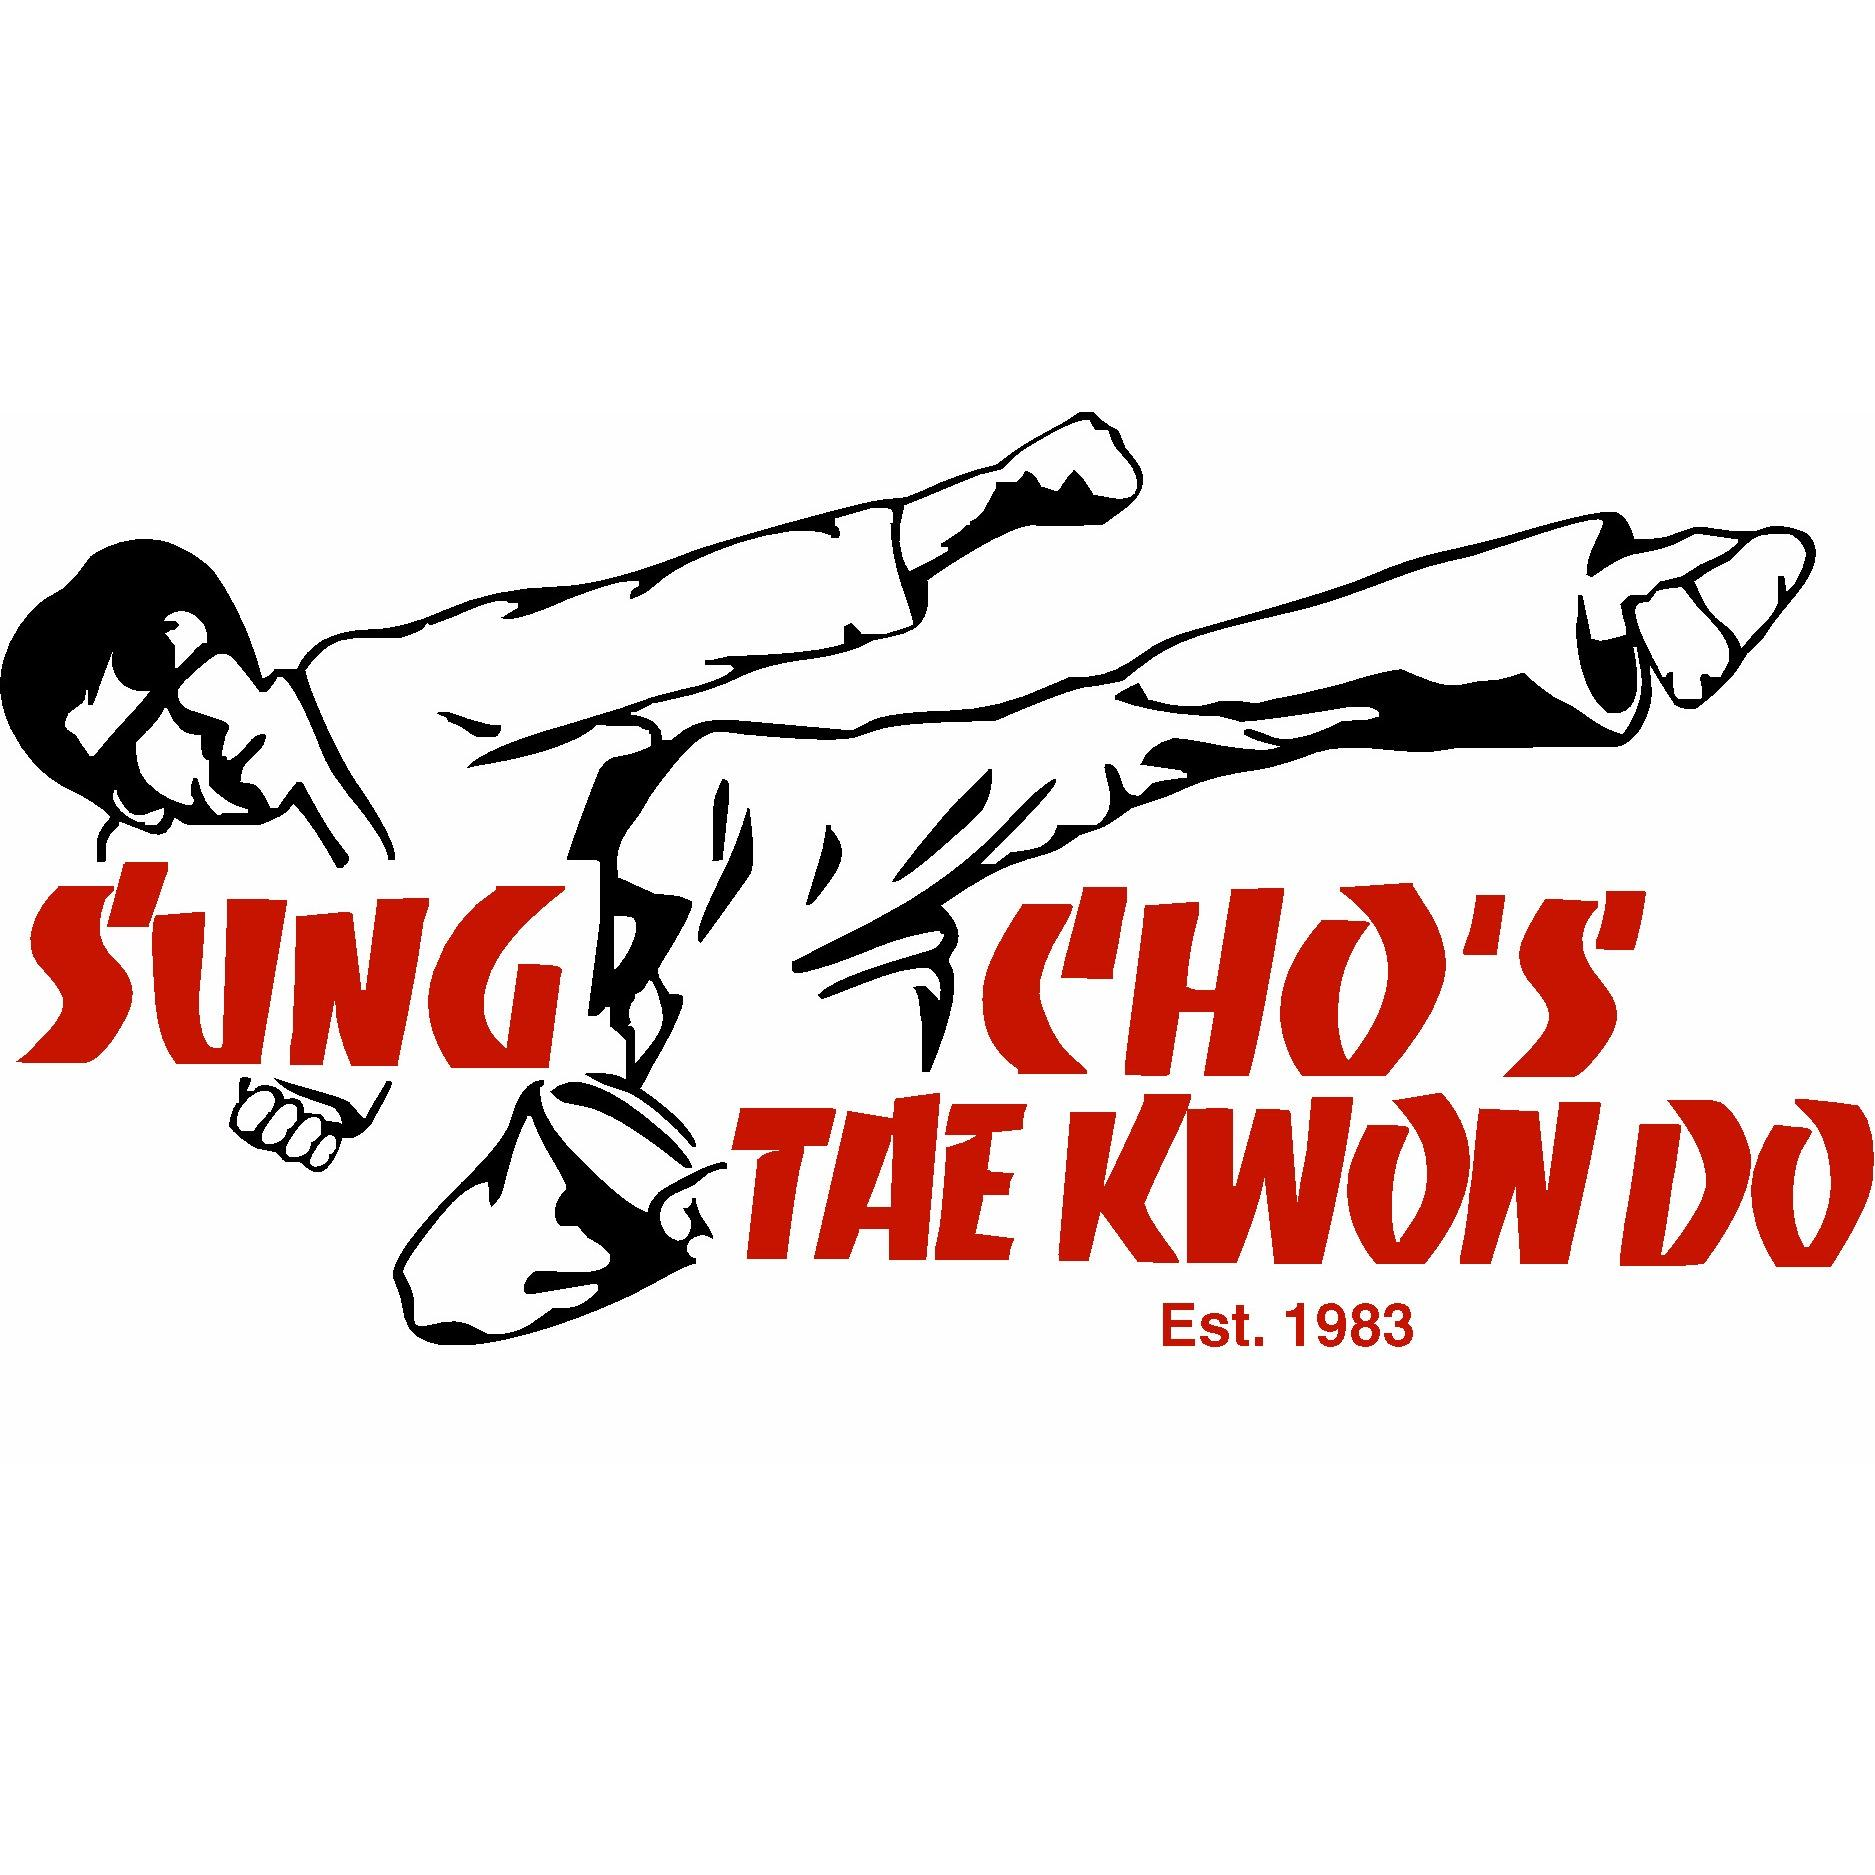 image of Sung Cho's Tae Kwon Do